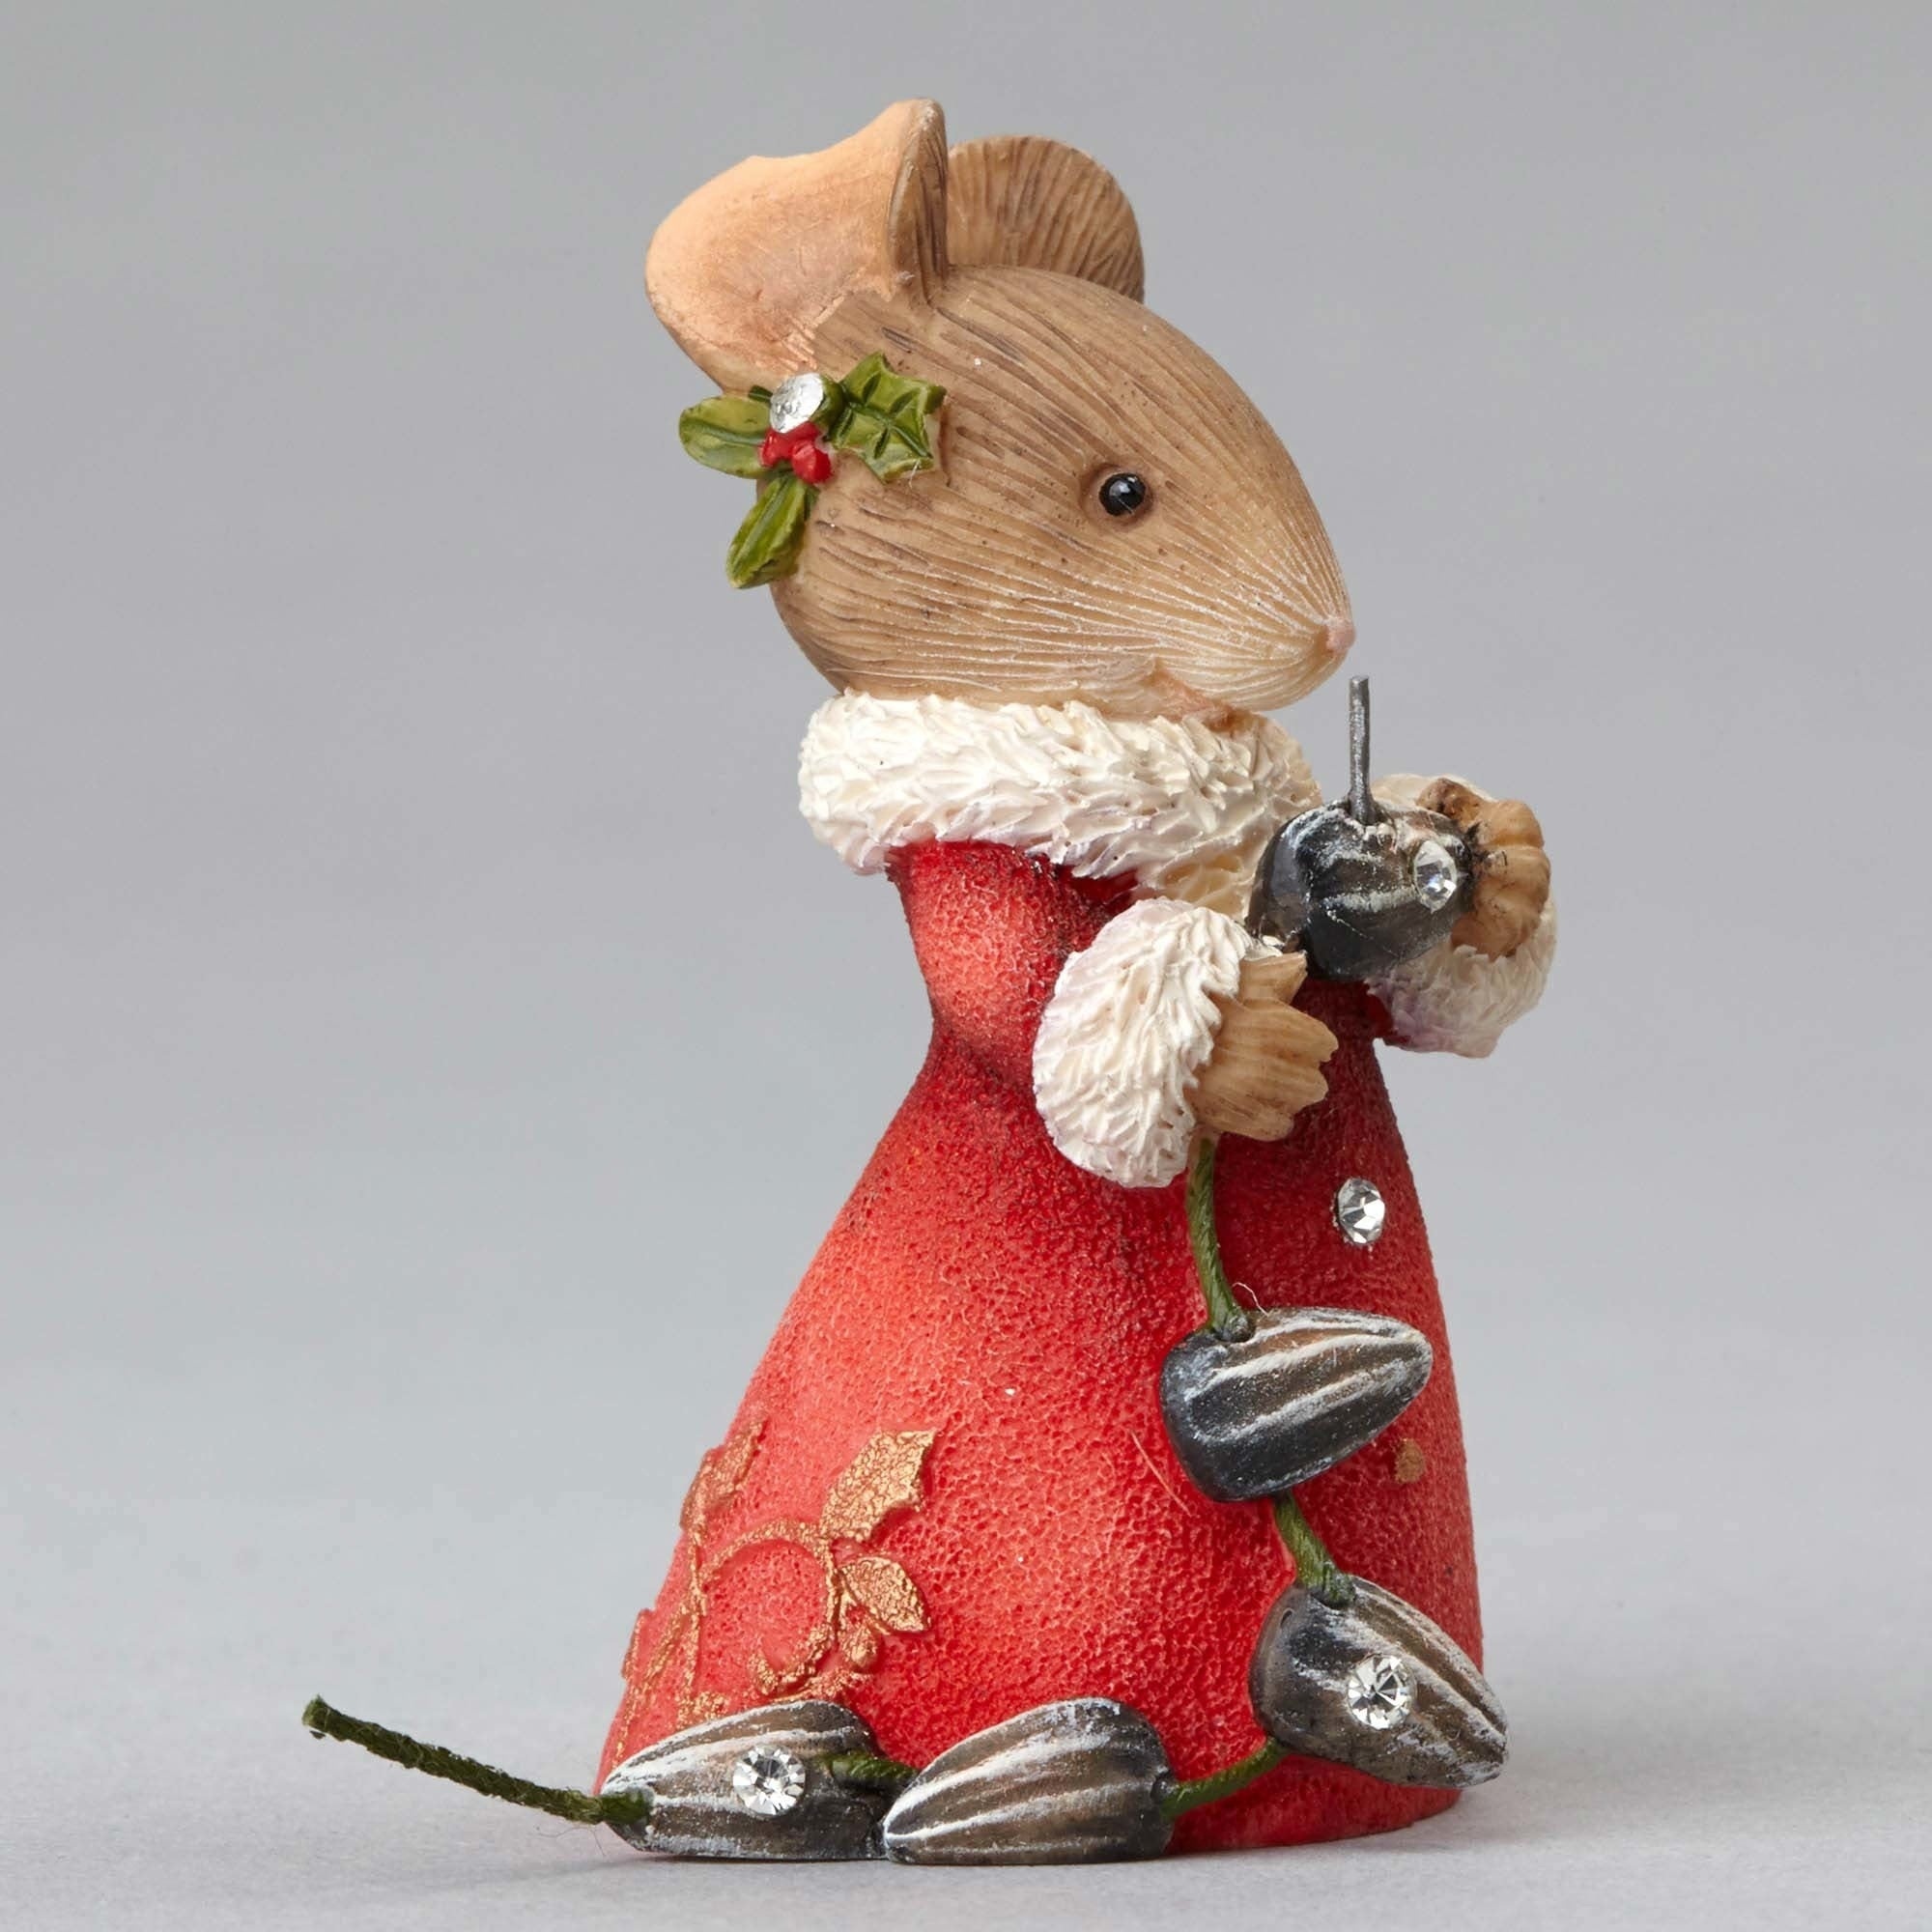 Mouse Making Garland with Seeds by Heart of Christmas